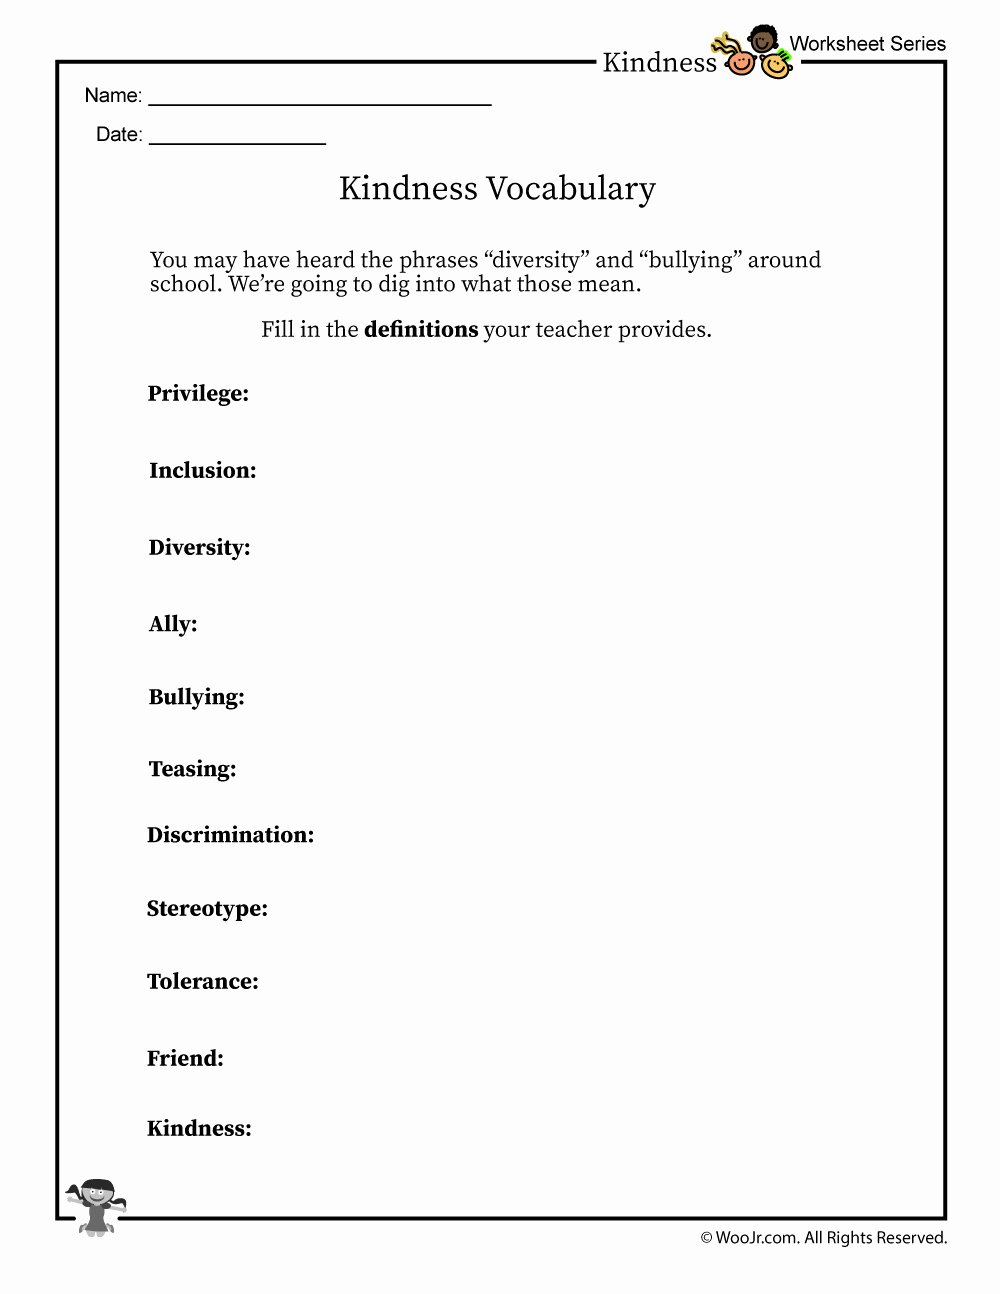 Kindness Worksheets for Preschoolers Inspirational Classroom Kindness & Inclusion Vocabulary Words Worksheet